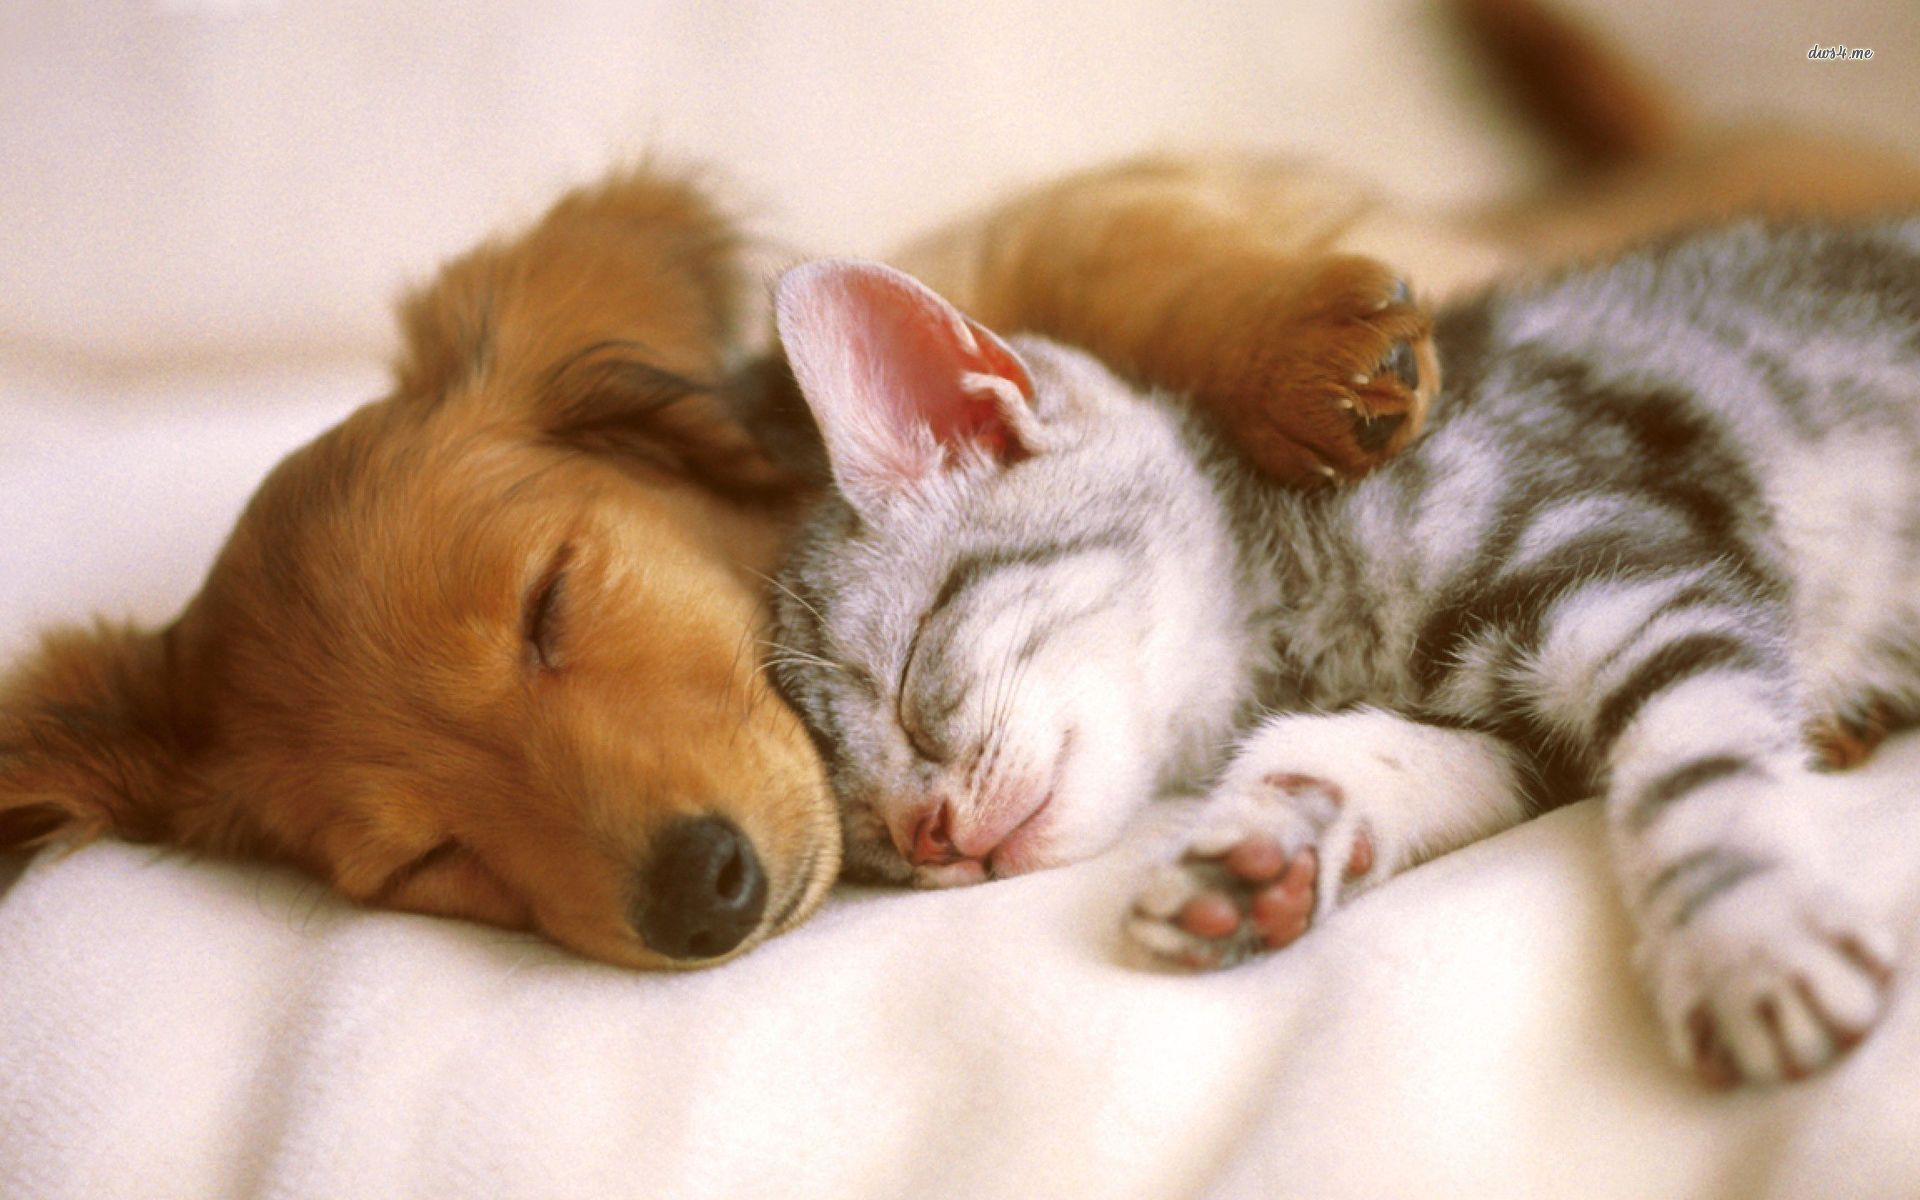 Cute Kittens And Puppies Sleeping Together Animals Pedia Jpg 1920